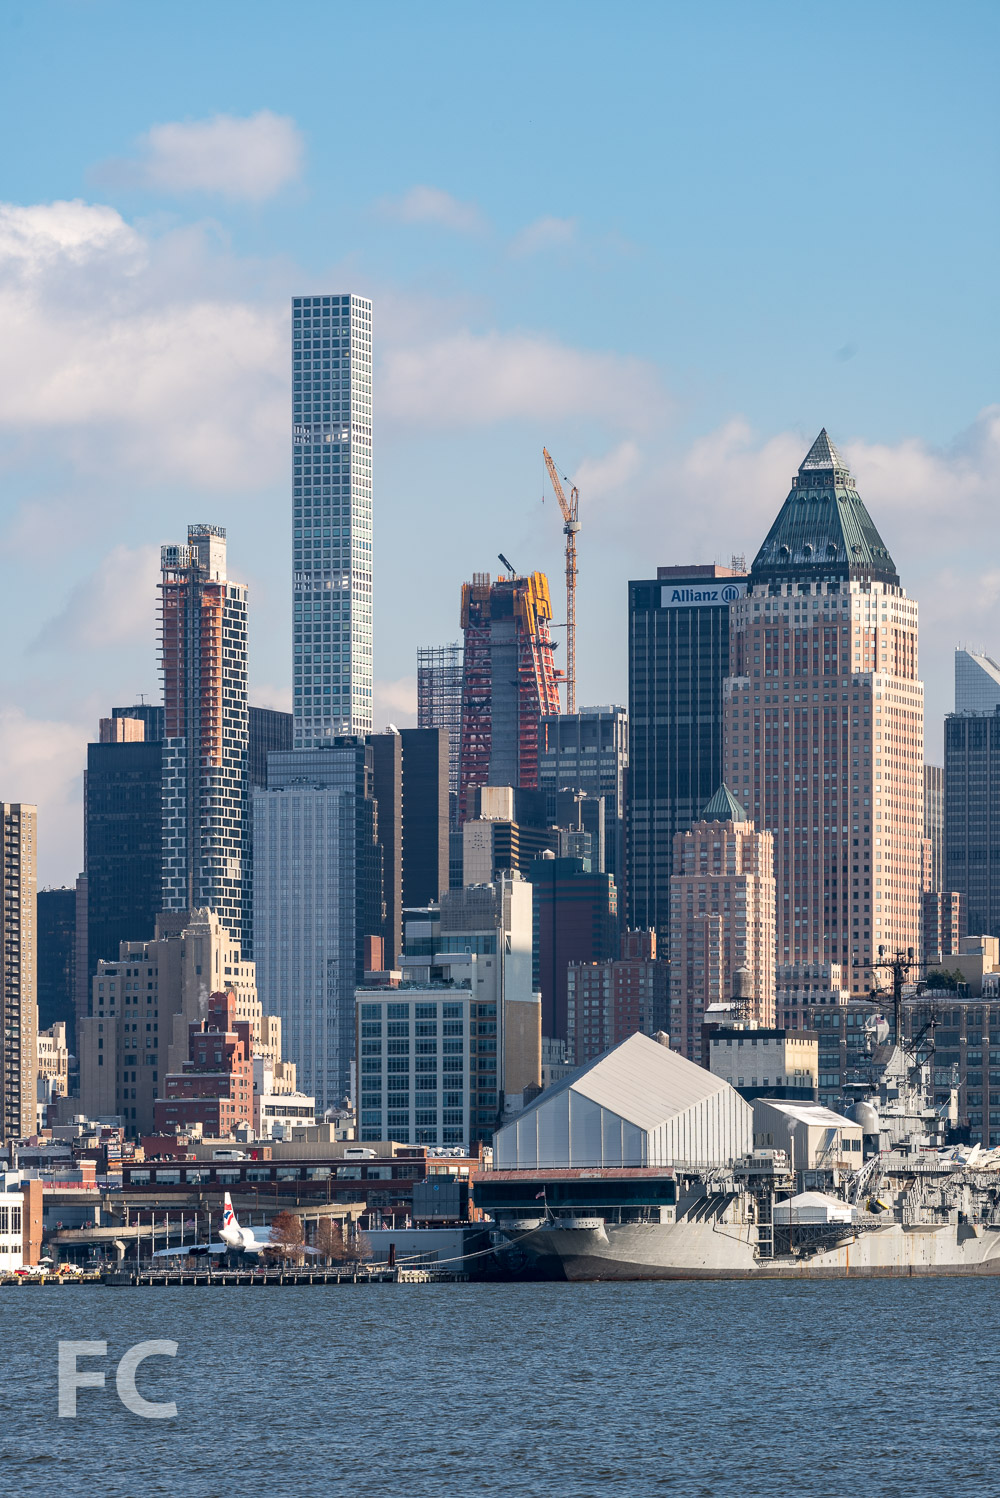 53W53 (center), 432 Park Avenue (left), and 242W53 (far left) from the Hudson River waterfront.